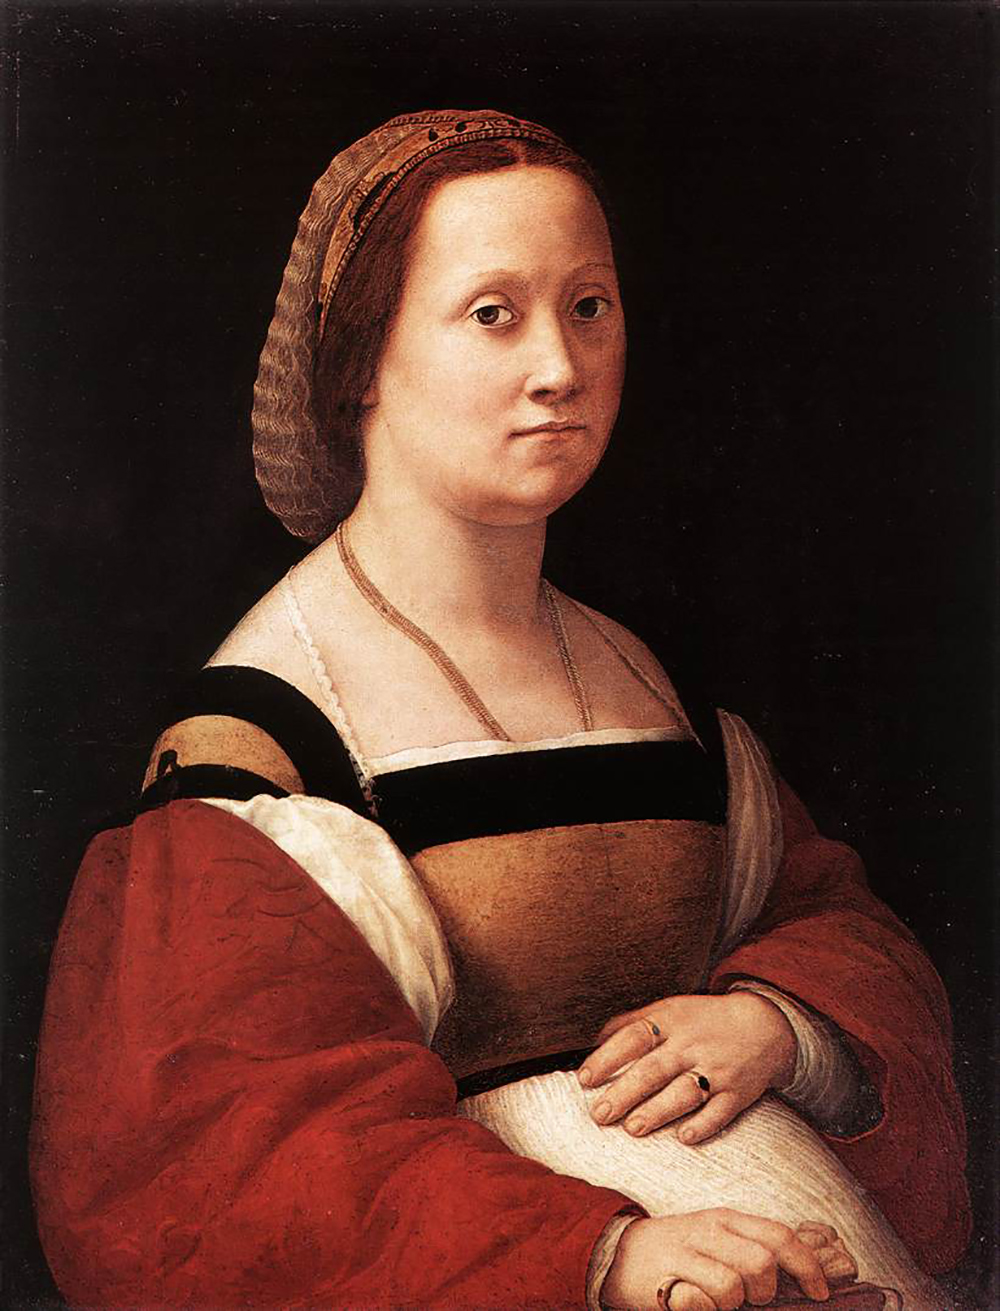 The Pregnant Woman, by Raphael, c. 1505.